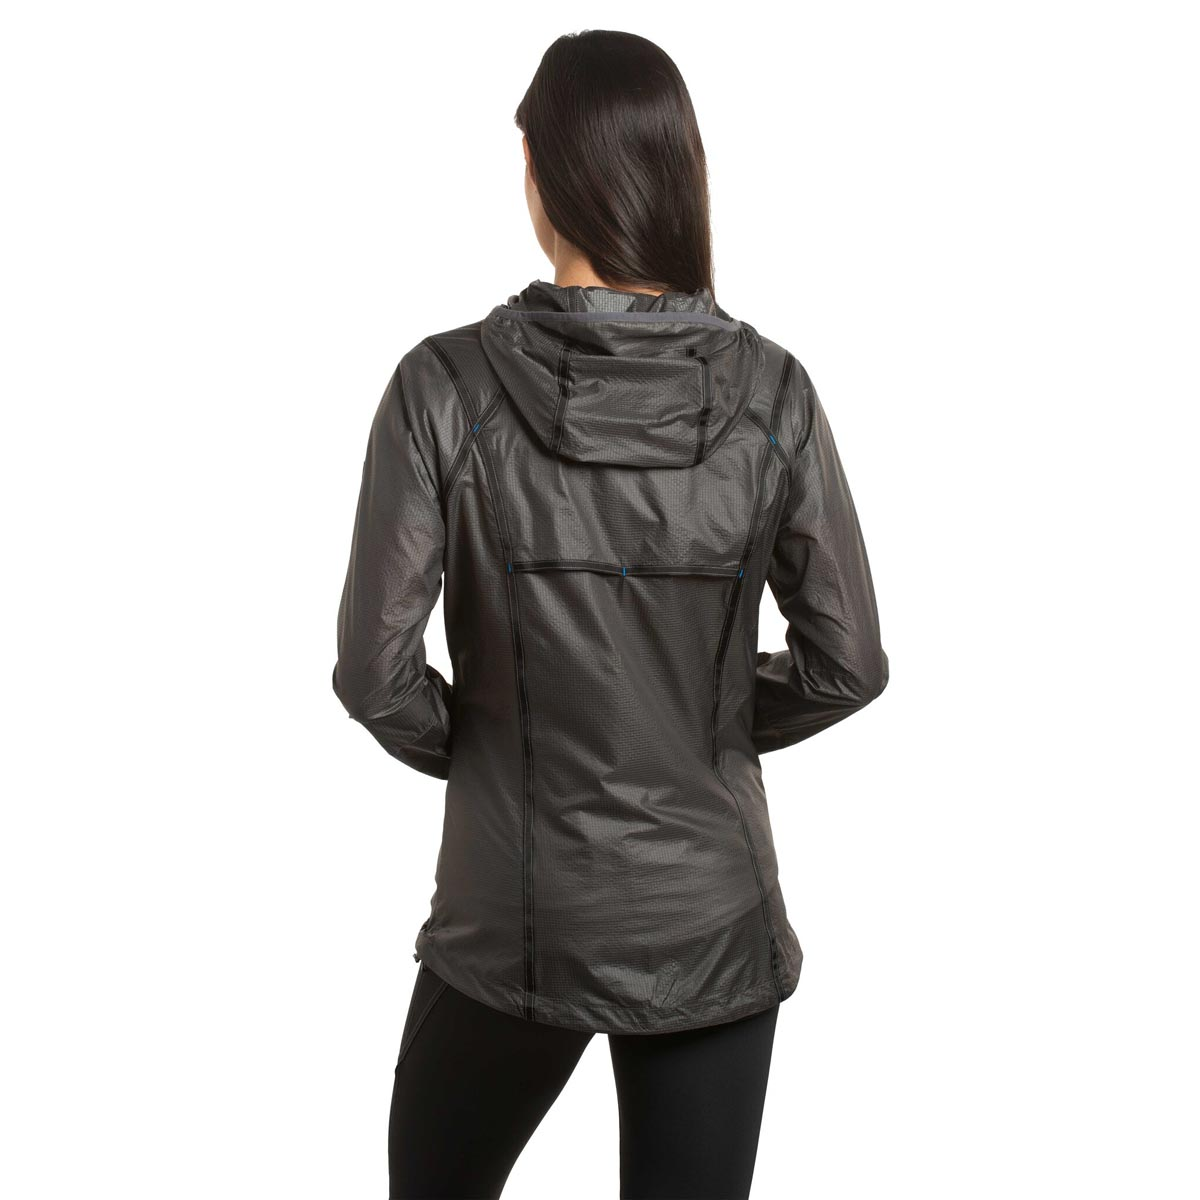 7914d715e7 Kuhl Women's Parajax Jacket | Backpack Outpost